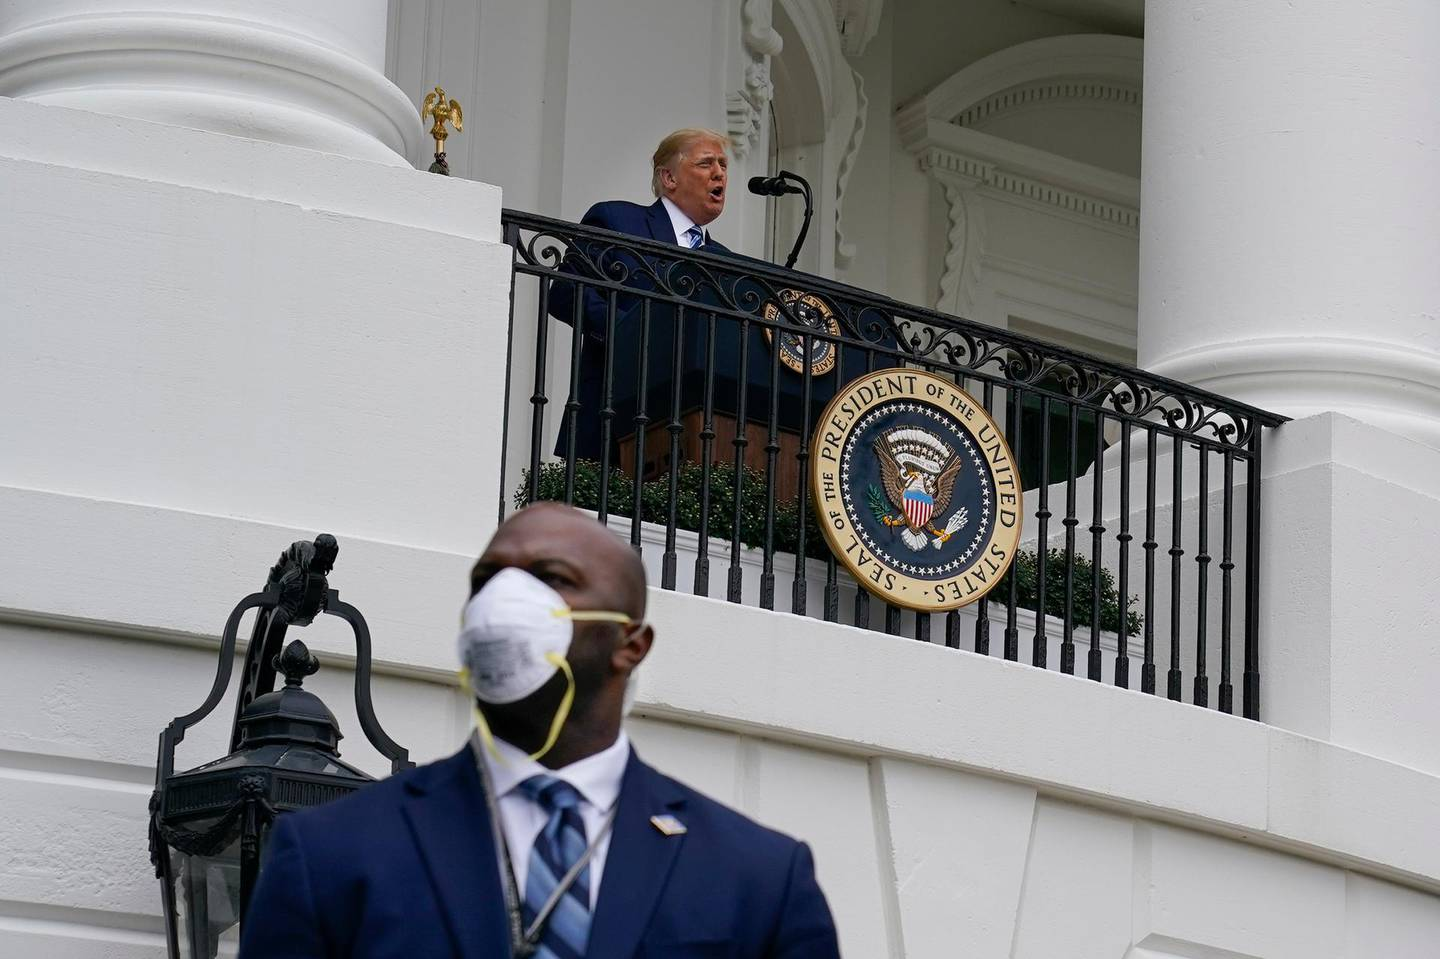 President Donald Trump speaks from the Blue Room Balcony of the White House to a crowd of supporters, Saturday, Oct. 10, 2020, in Washington. On the lower left is a member of the Secret Service wearing a face mask. (AP Photo/Alex Brandon)